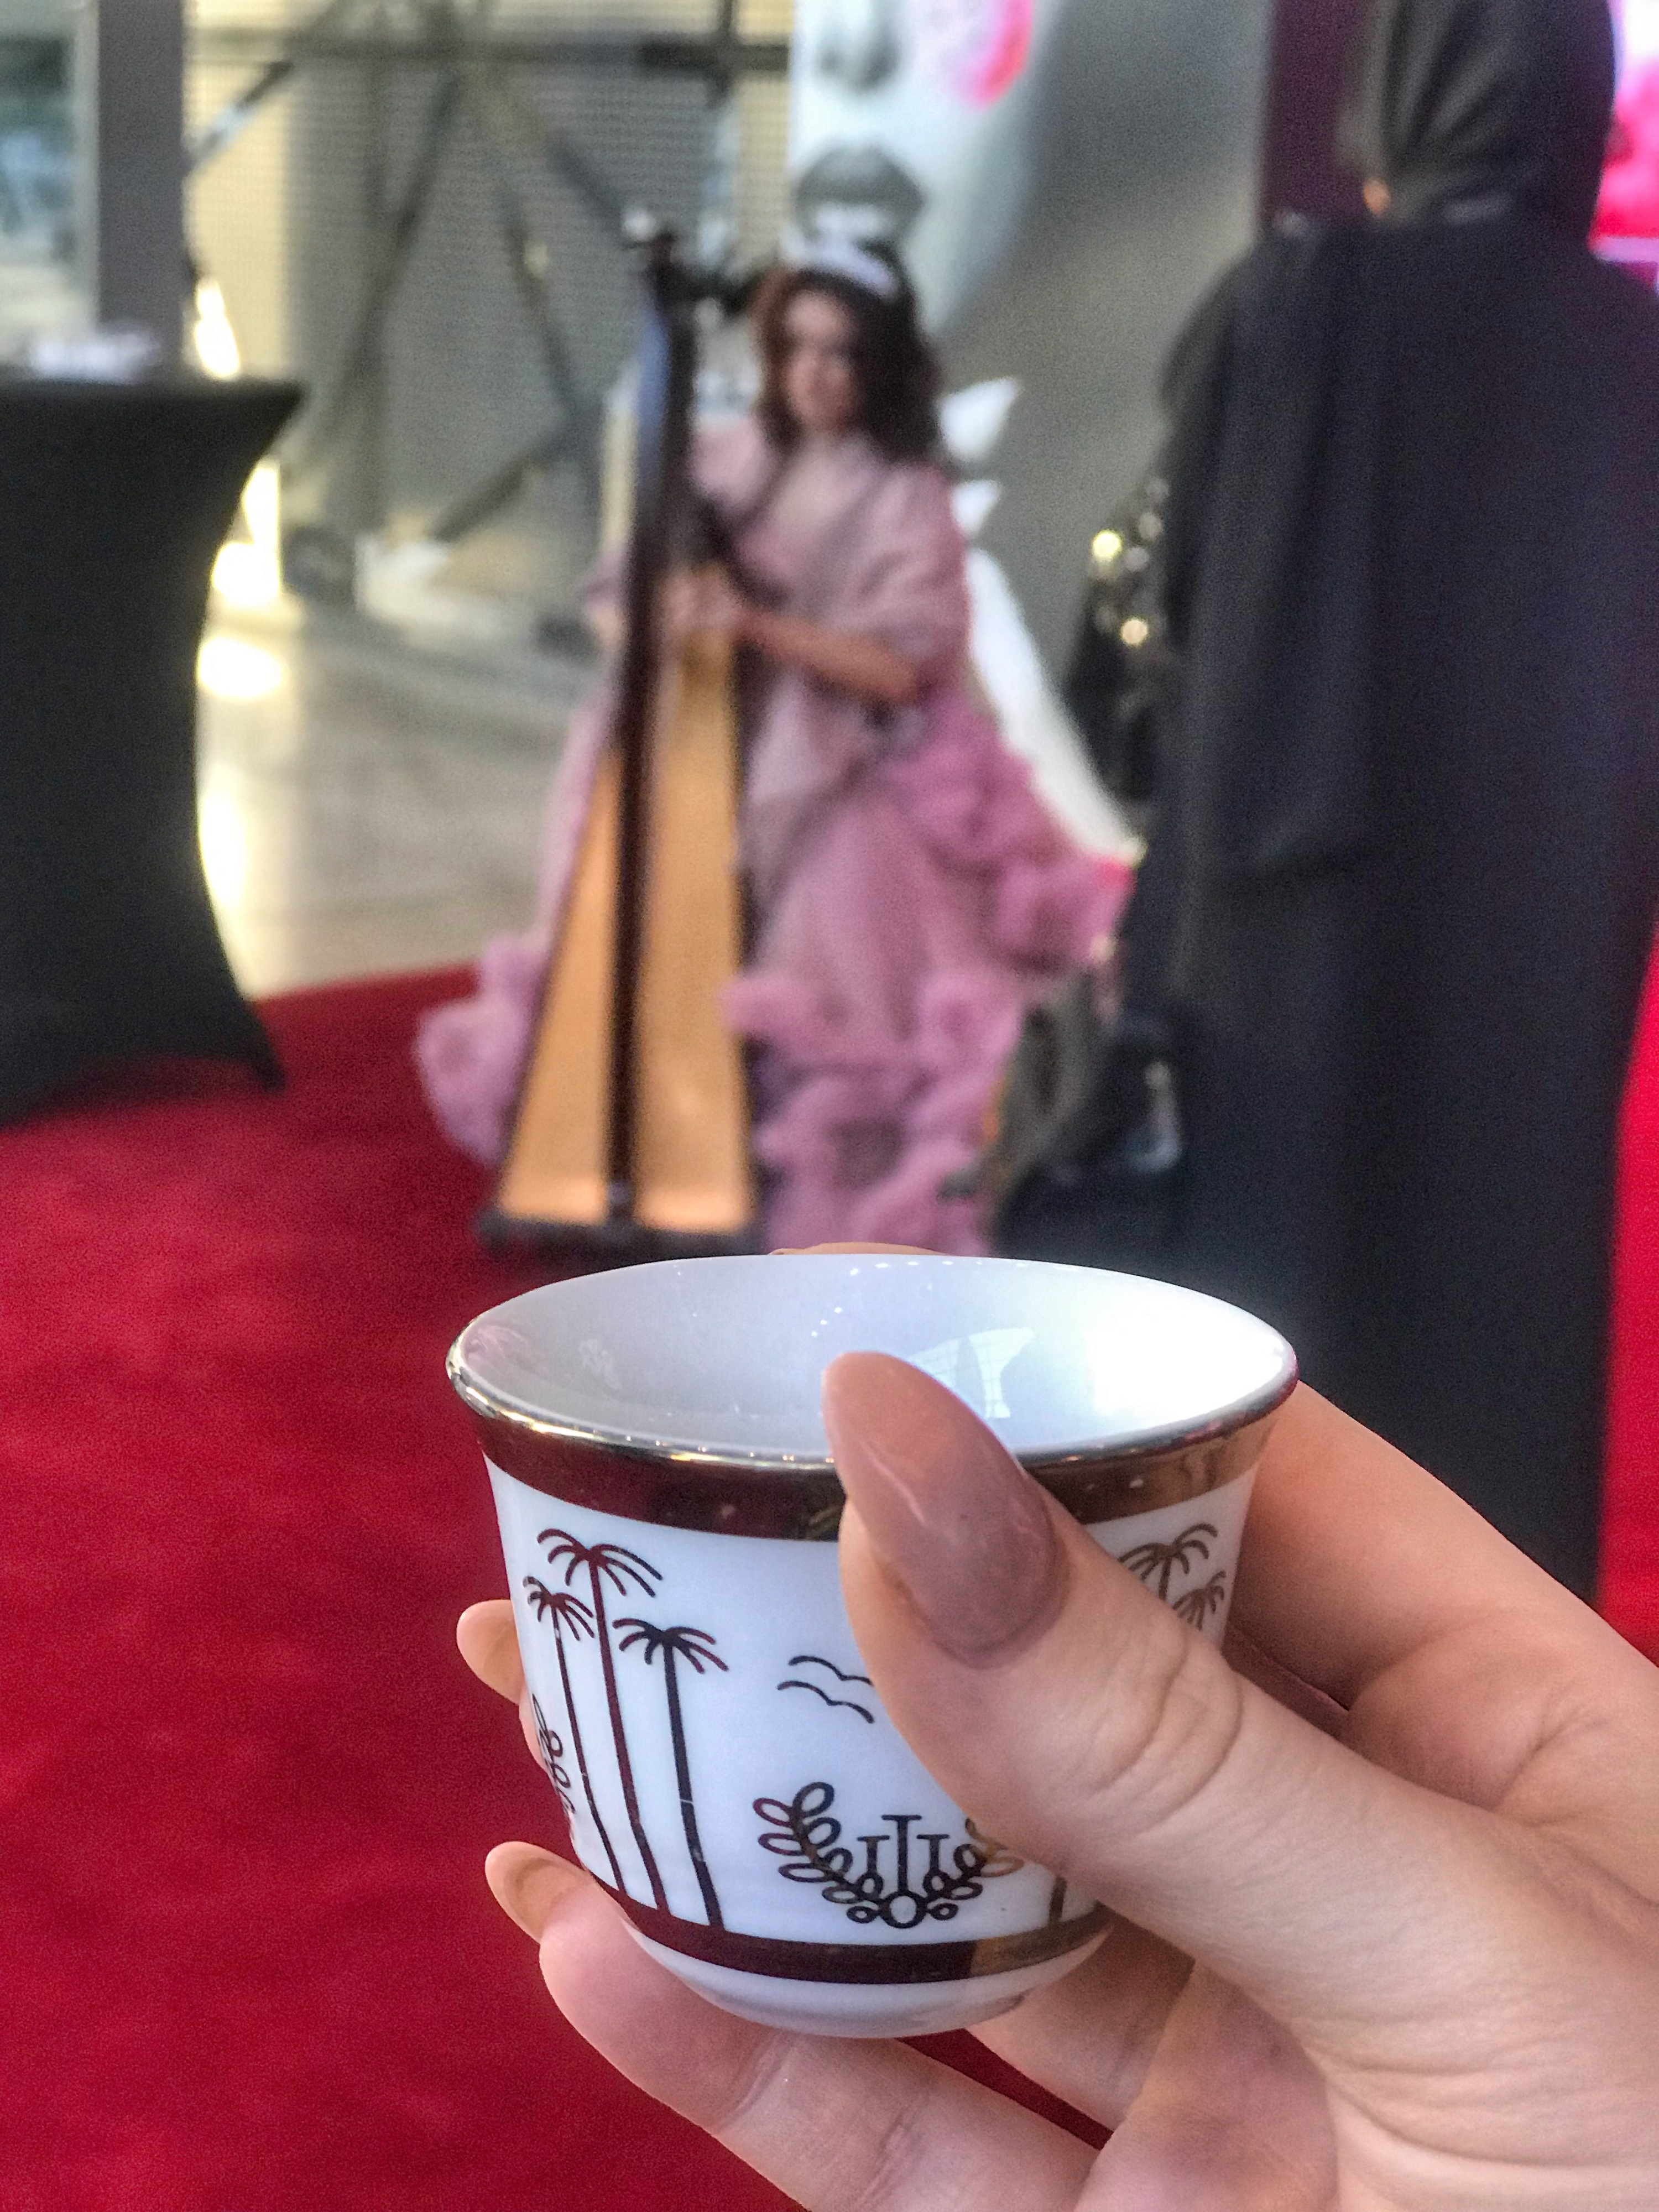 Arabic Coffee | Visit Qatar | Doha, the capital of Qatar is located in the Middle East and the World Cup 2022 location. Find out how I spent 4 days on my visit to Qatar | Travel Guide & Tips | Elle Blonde Luxury Lifestyle Destination Blog